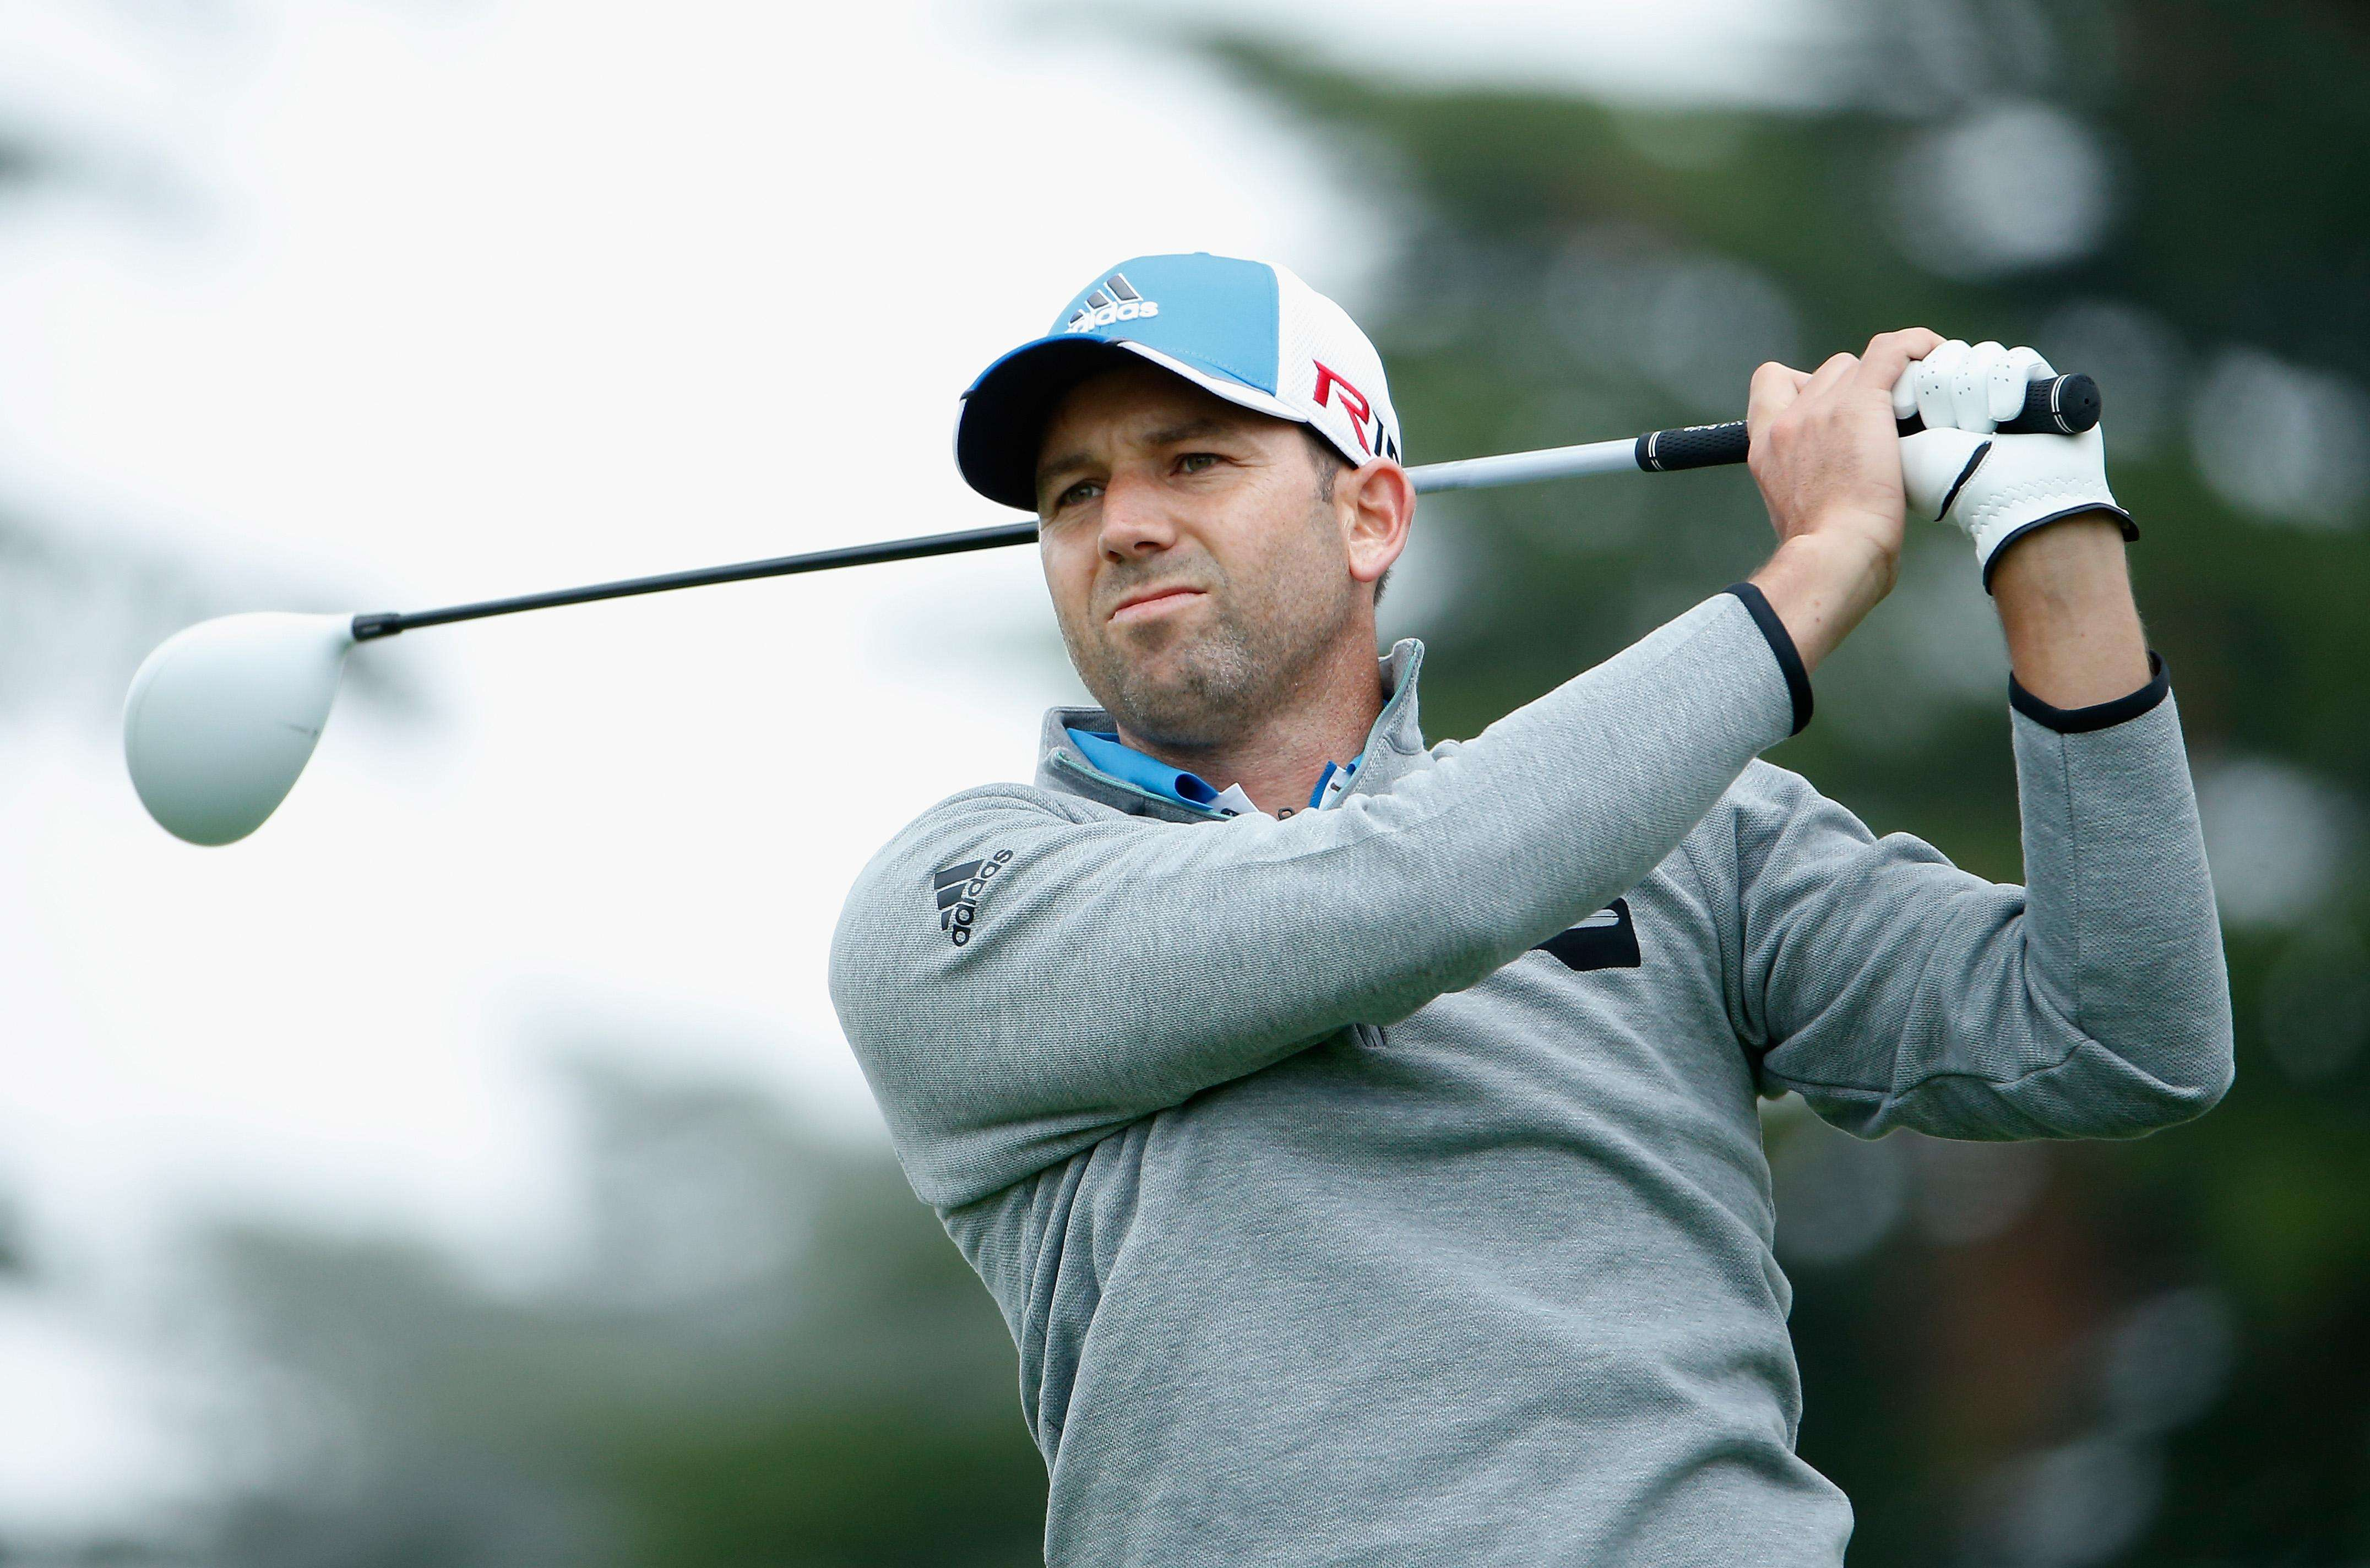 SAN FRANCISCO, CA - MAY 01: Sergio Garcia of Spain hits a tee shot on the sixth hole during round three of the World Golf Championships Cadillac Match Play at TPC Harding Park on May 1, 2015 in San Francisco, California. (Photo by Christian Petersen/Getty Images)